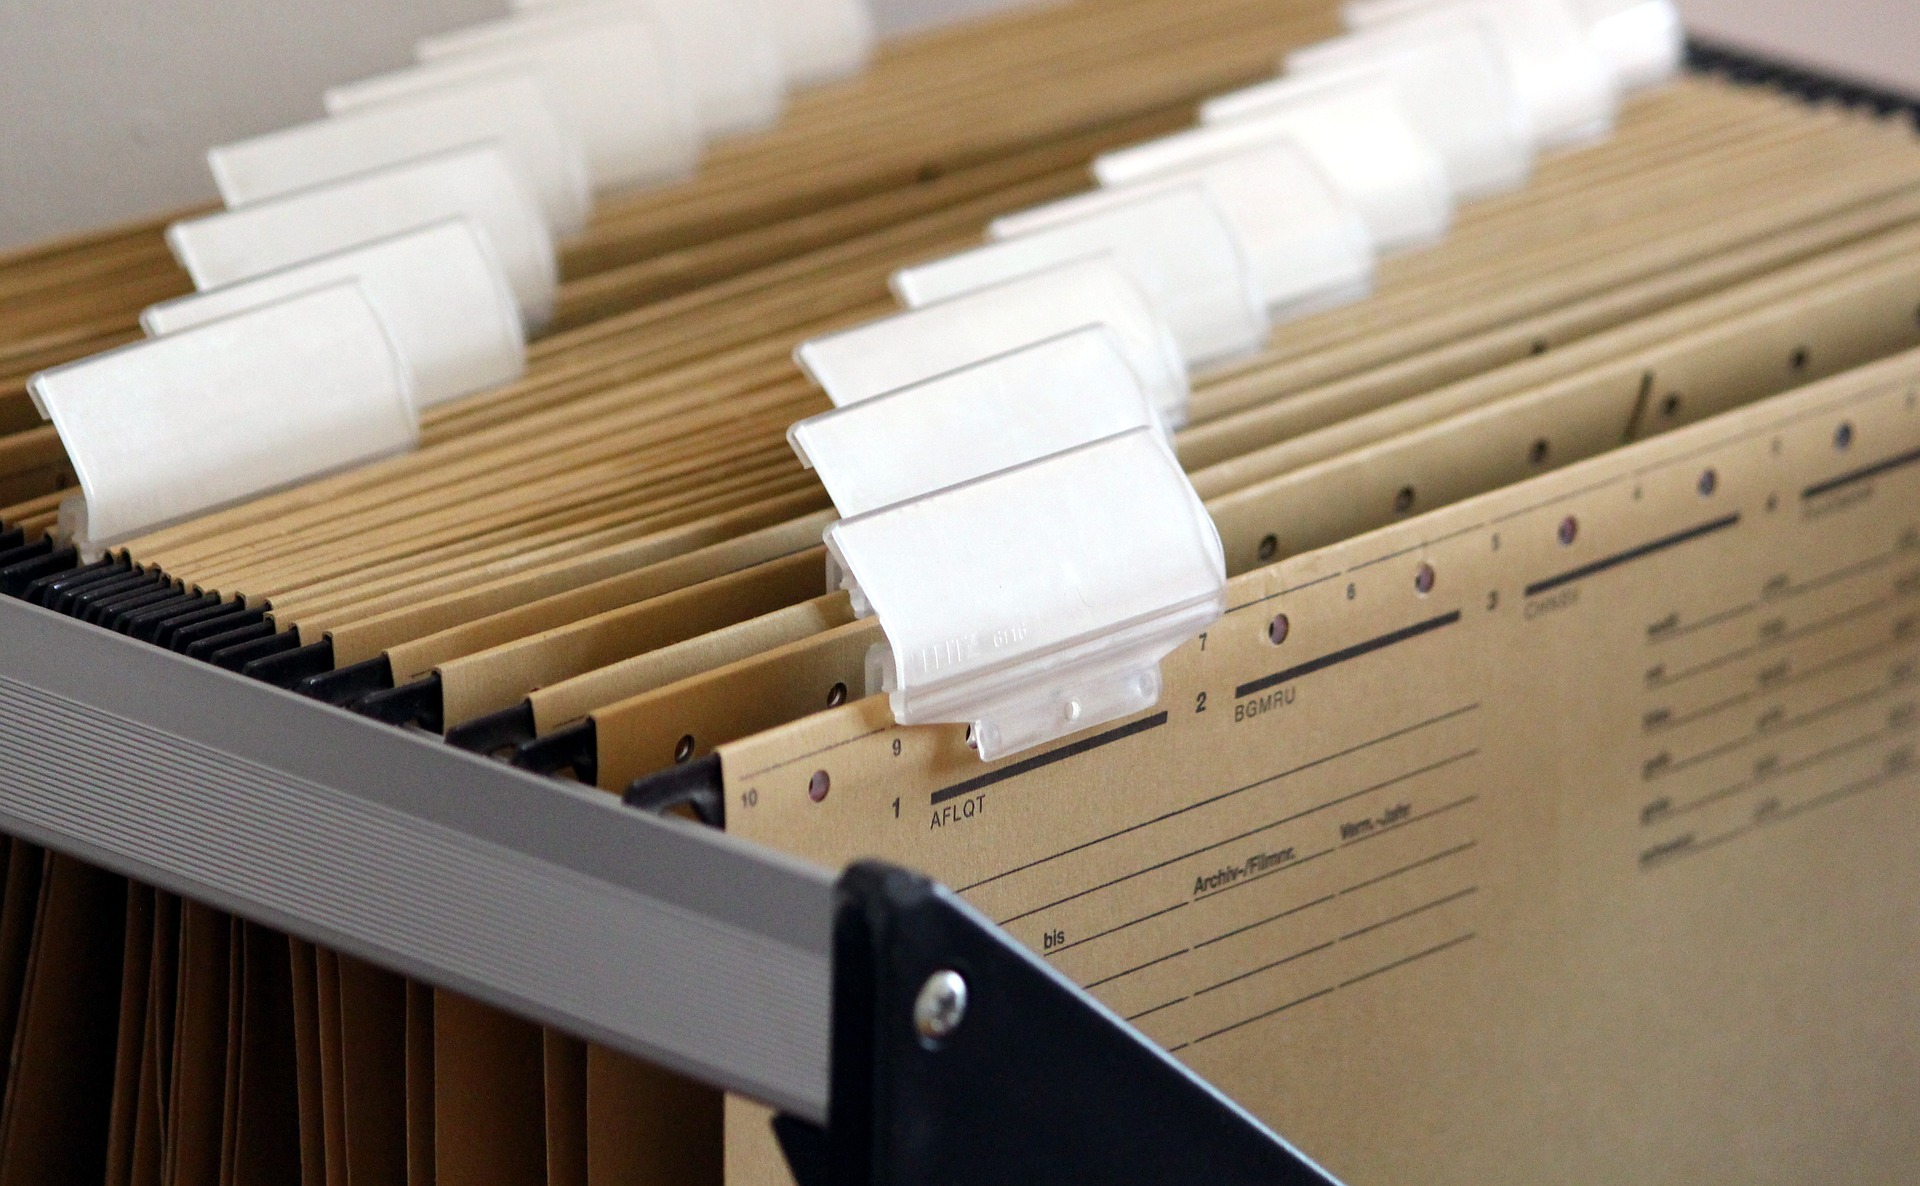 An in-depth review of the best filing cabinets available in 2019.